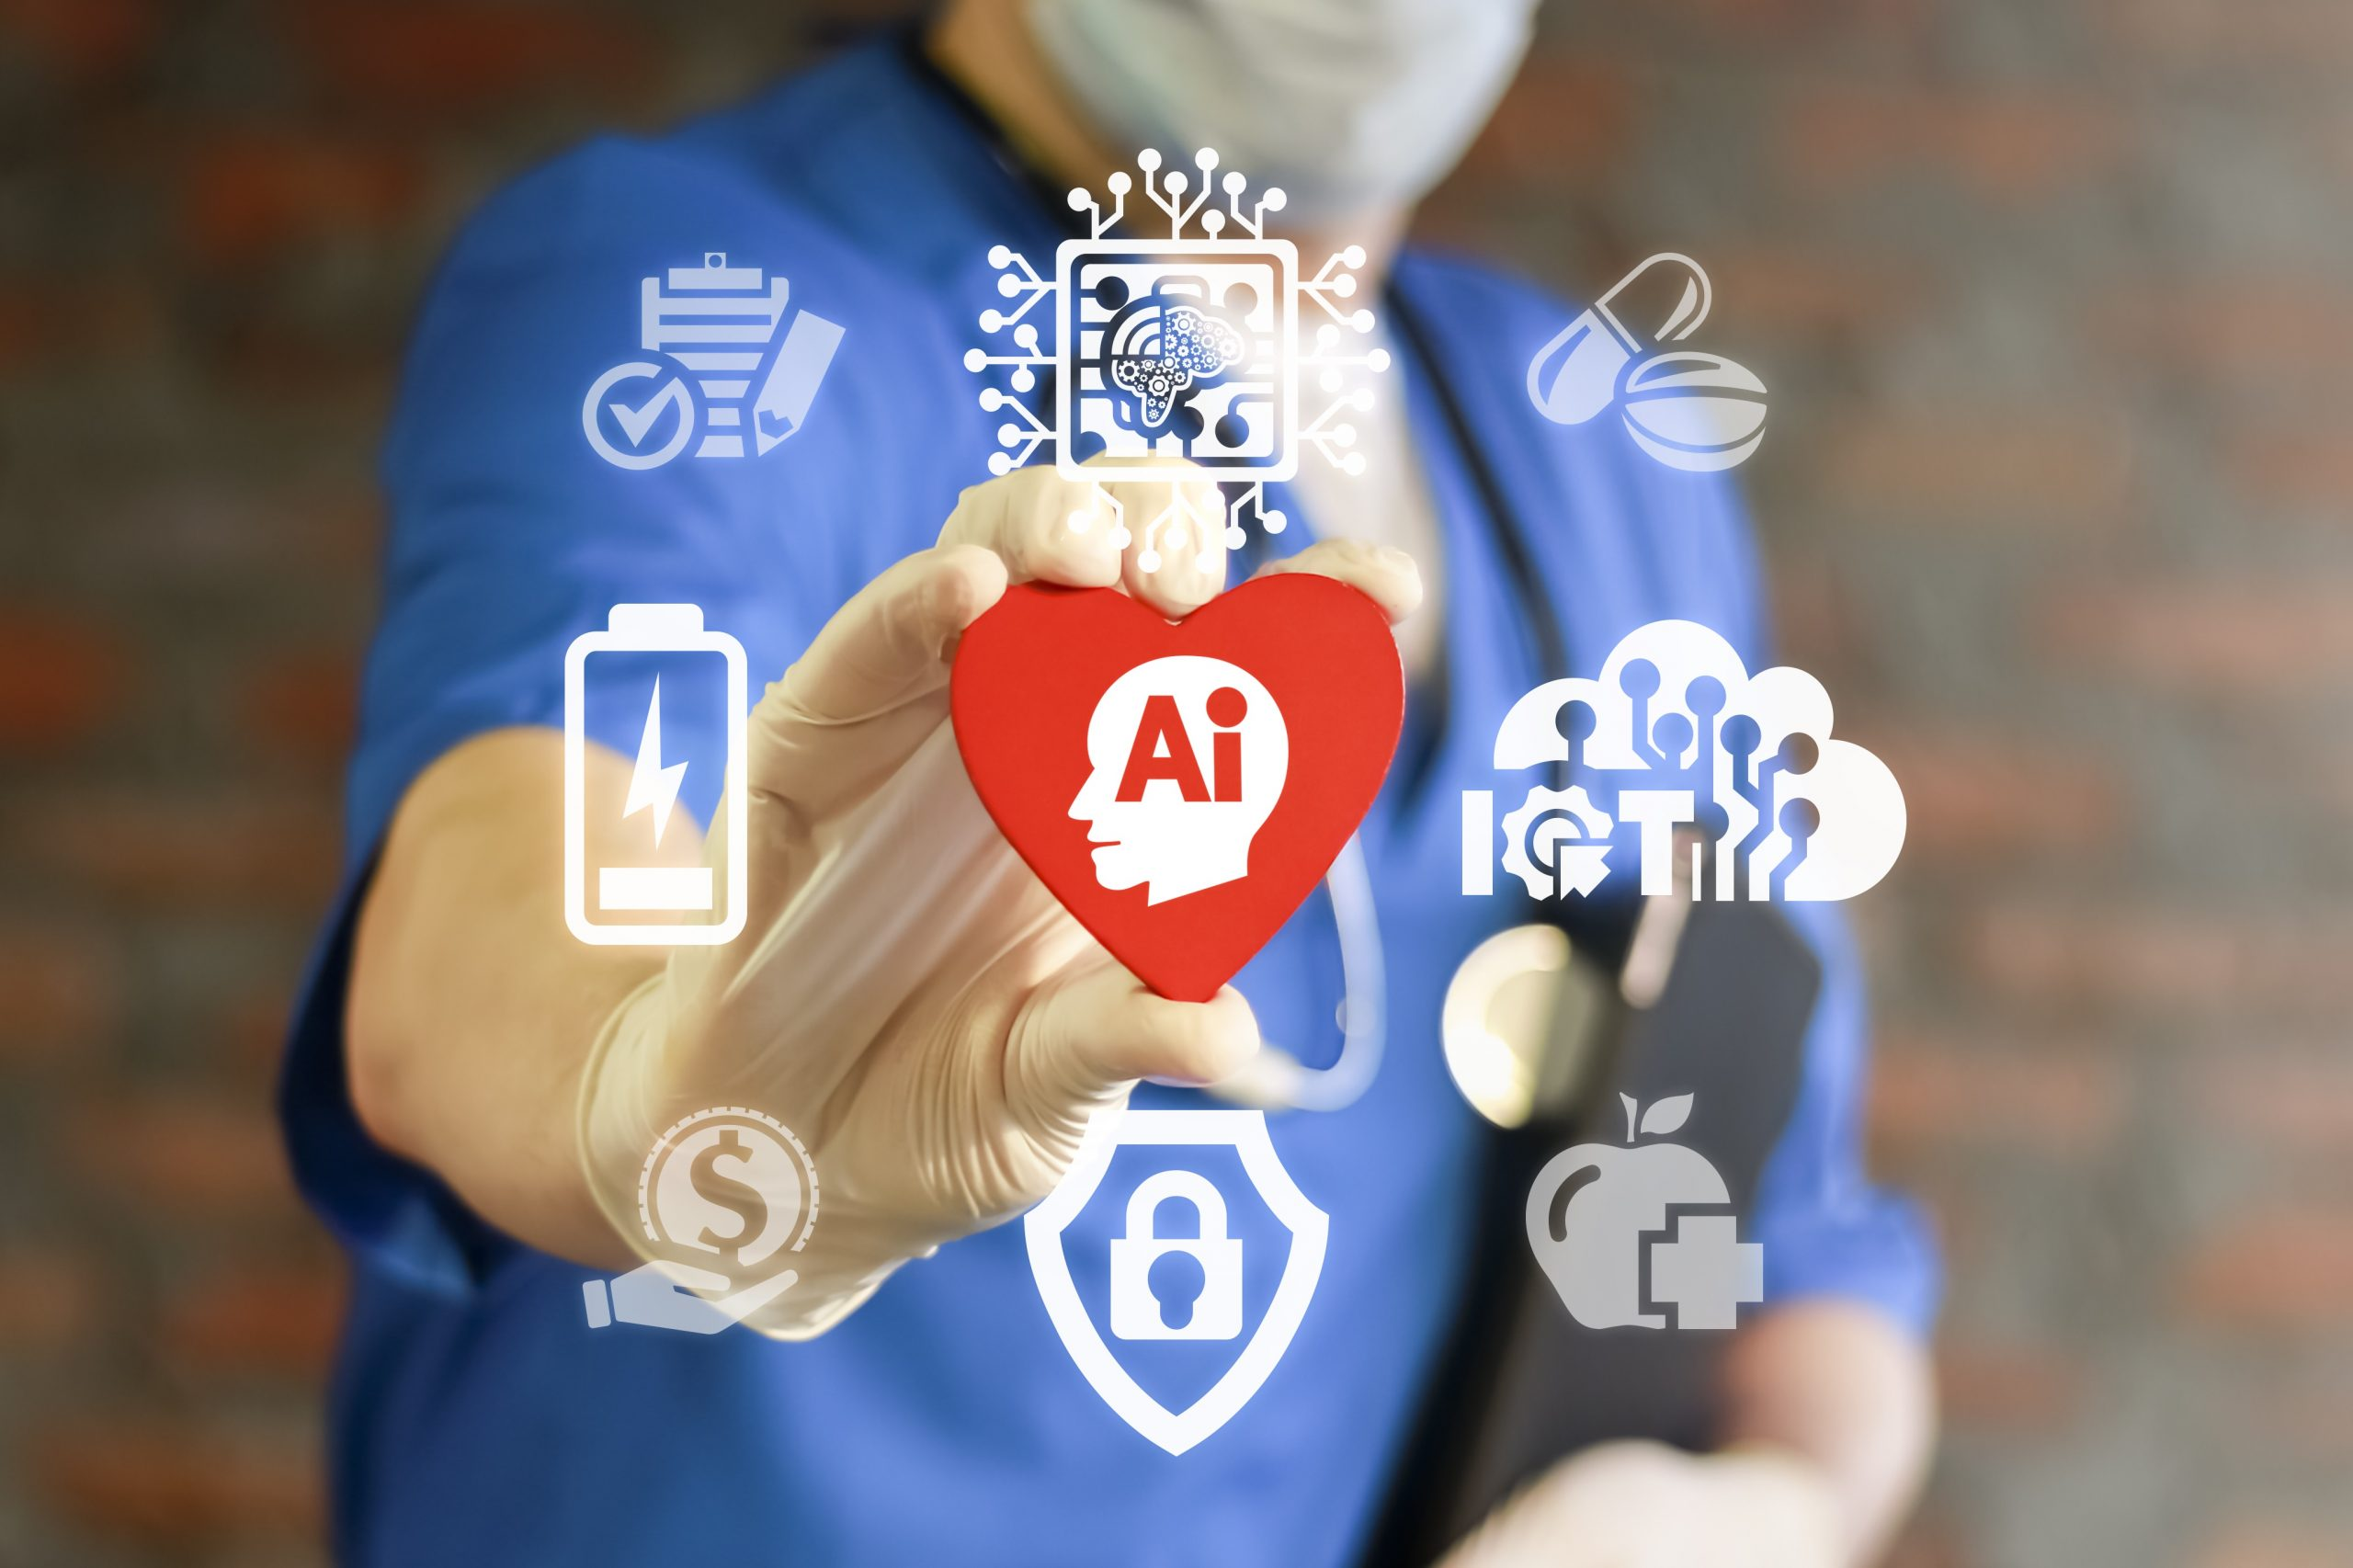 Artificial intelligence has come to medicine. Are patients being put at risk?